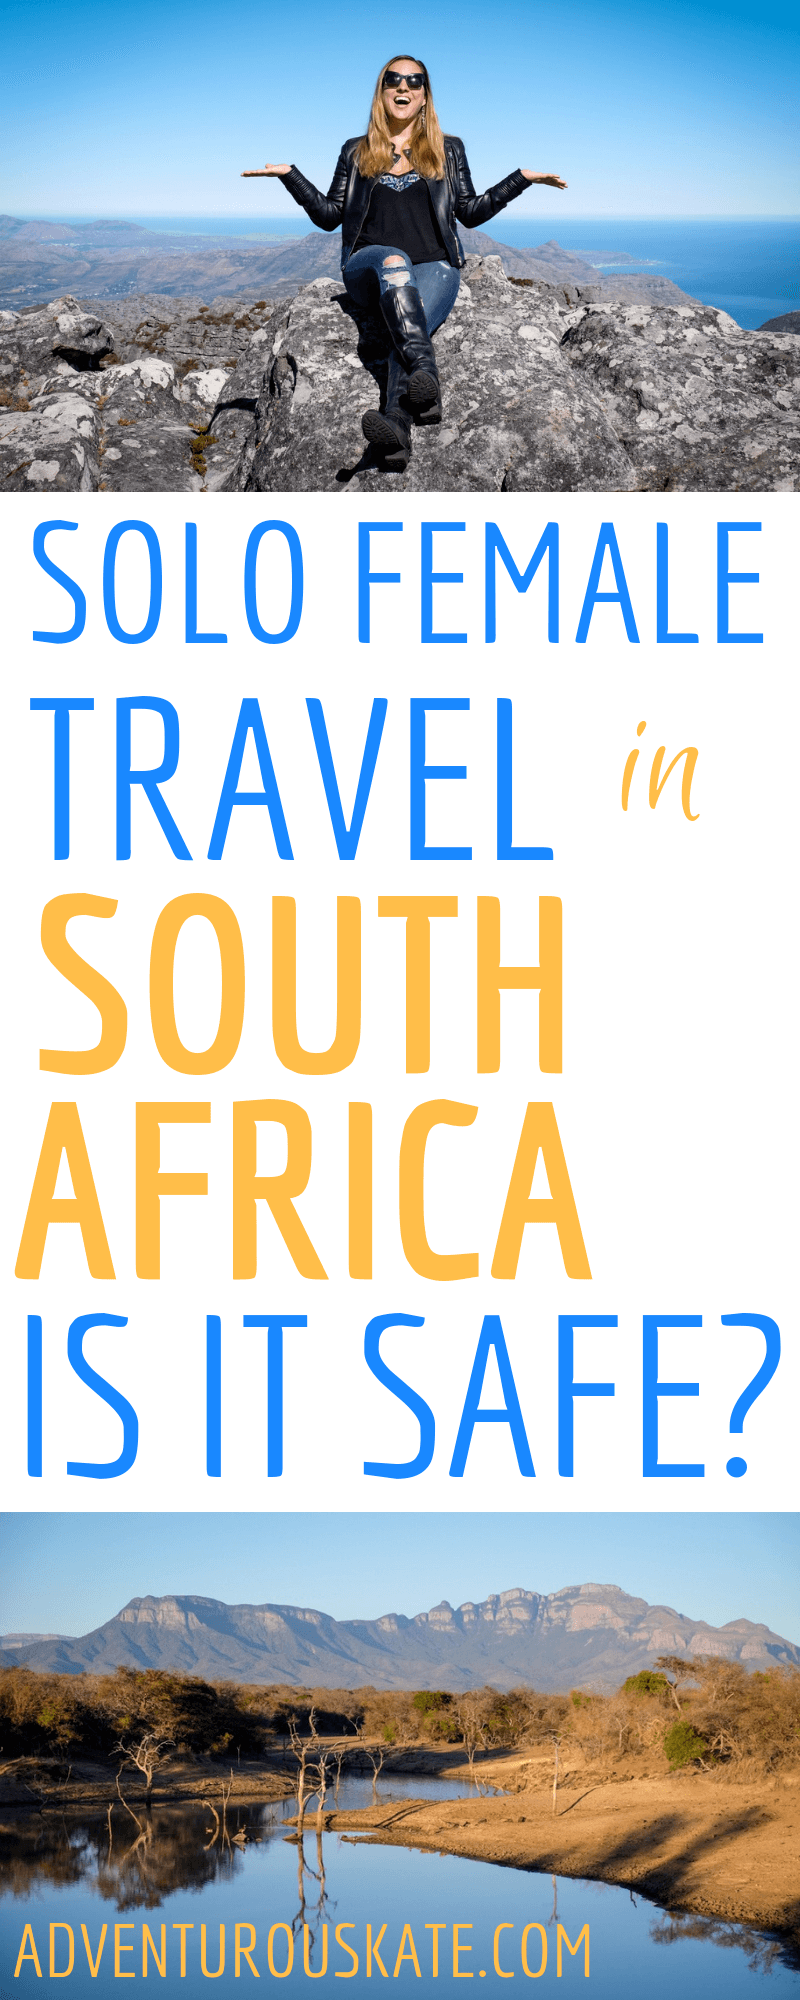 Solo-Female-Travel-in-South-Africa ▷ Viaje en solitario en Sudáfrica: ¿es seguro?